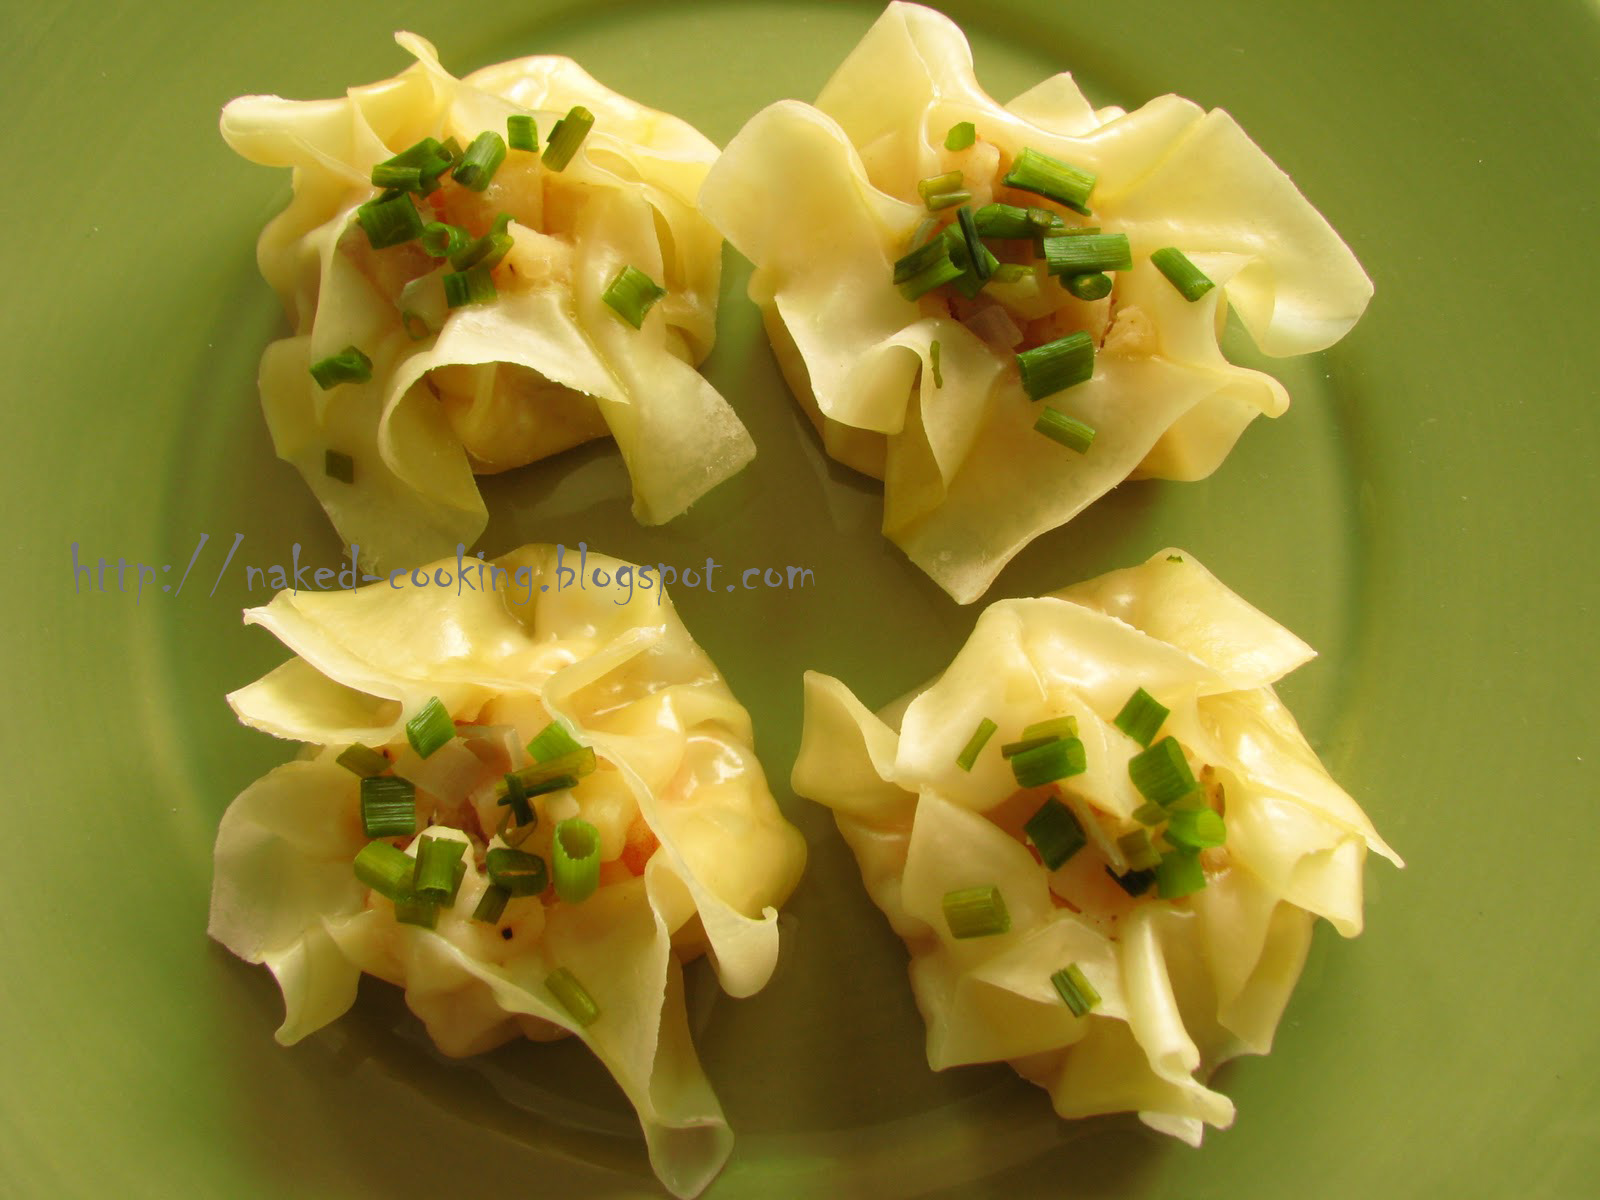 Naked Cooking: Steamed Chinese Shrimp Dumplings